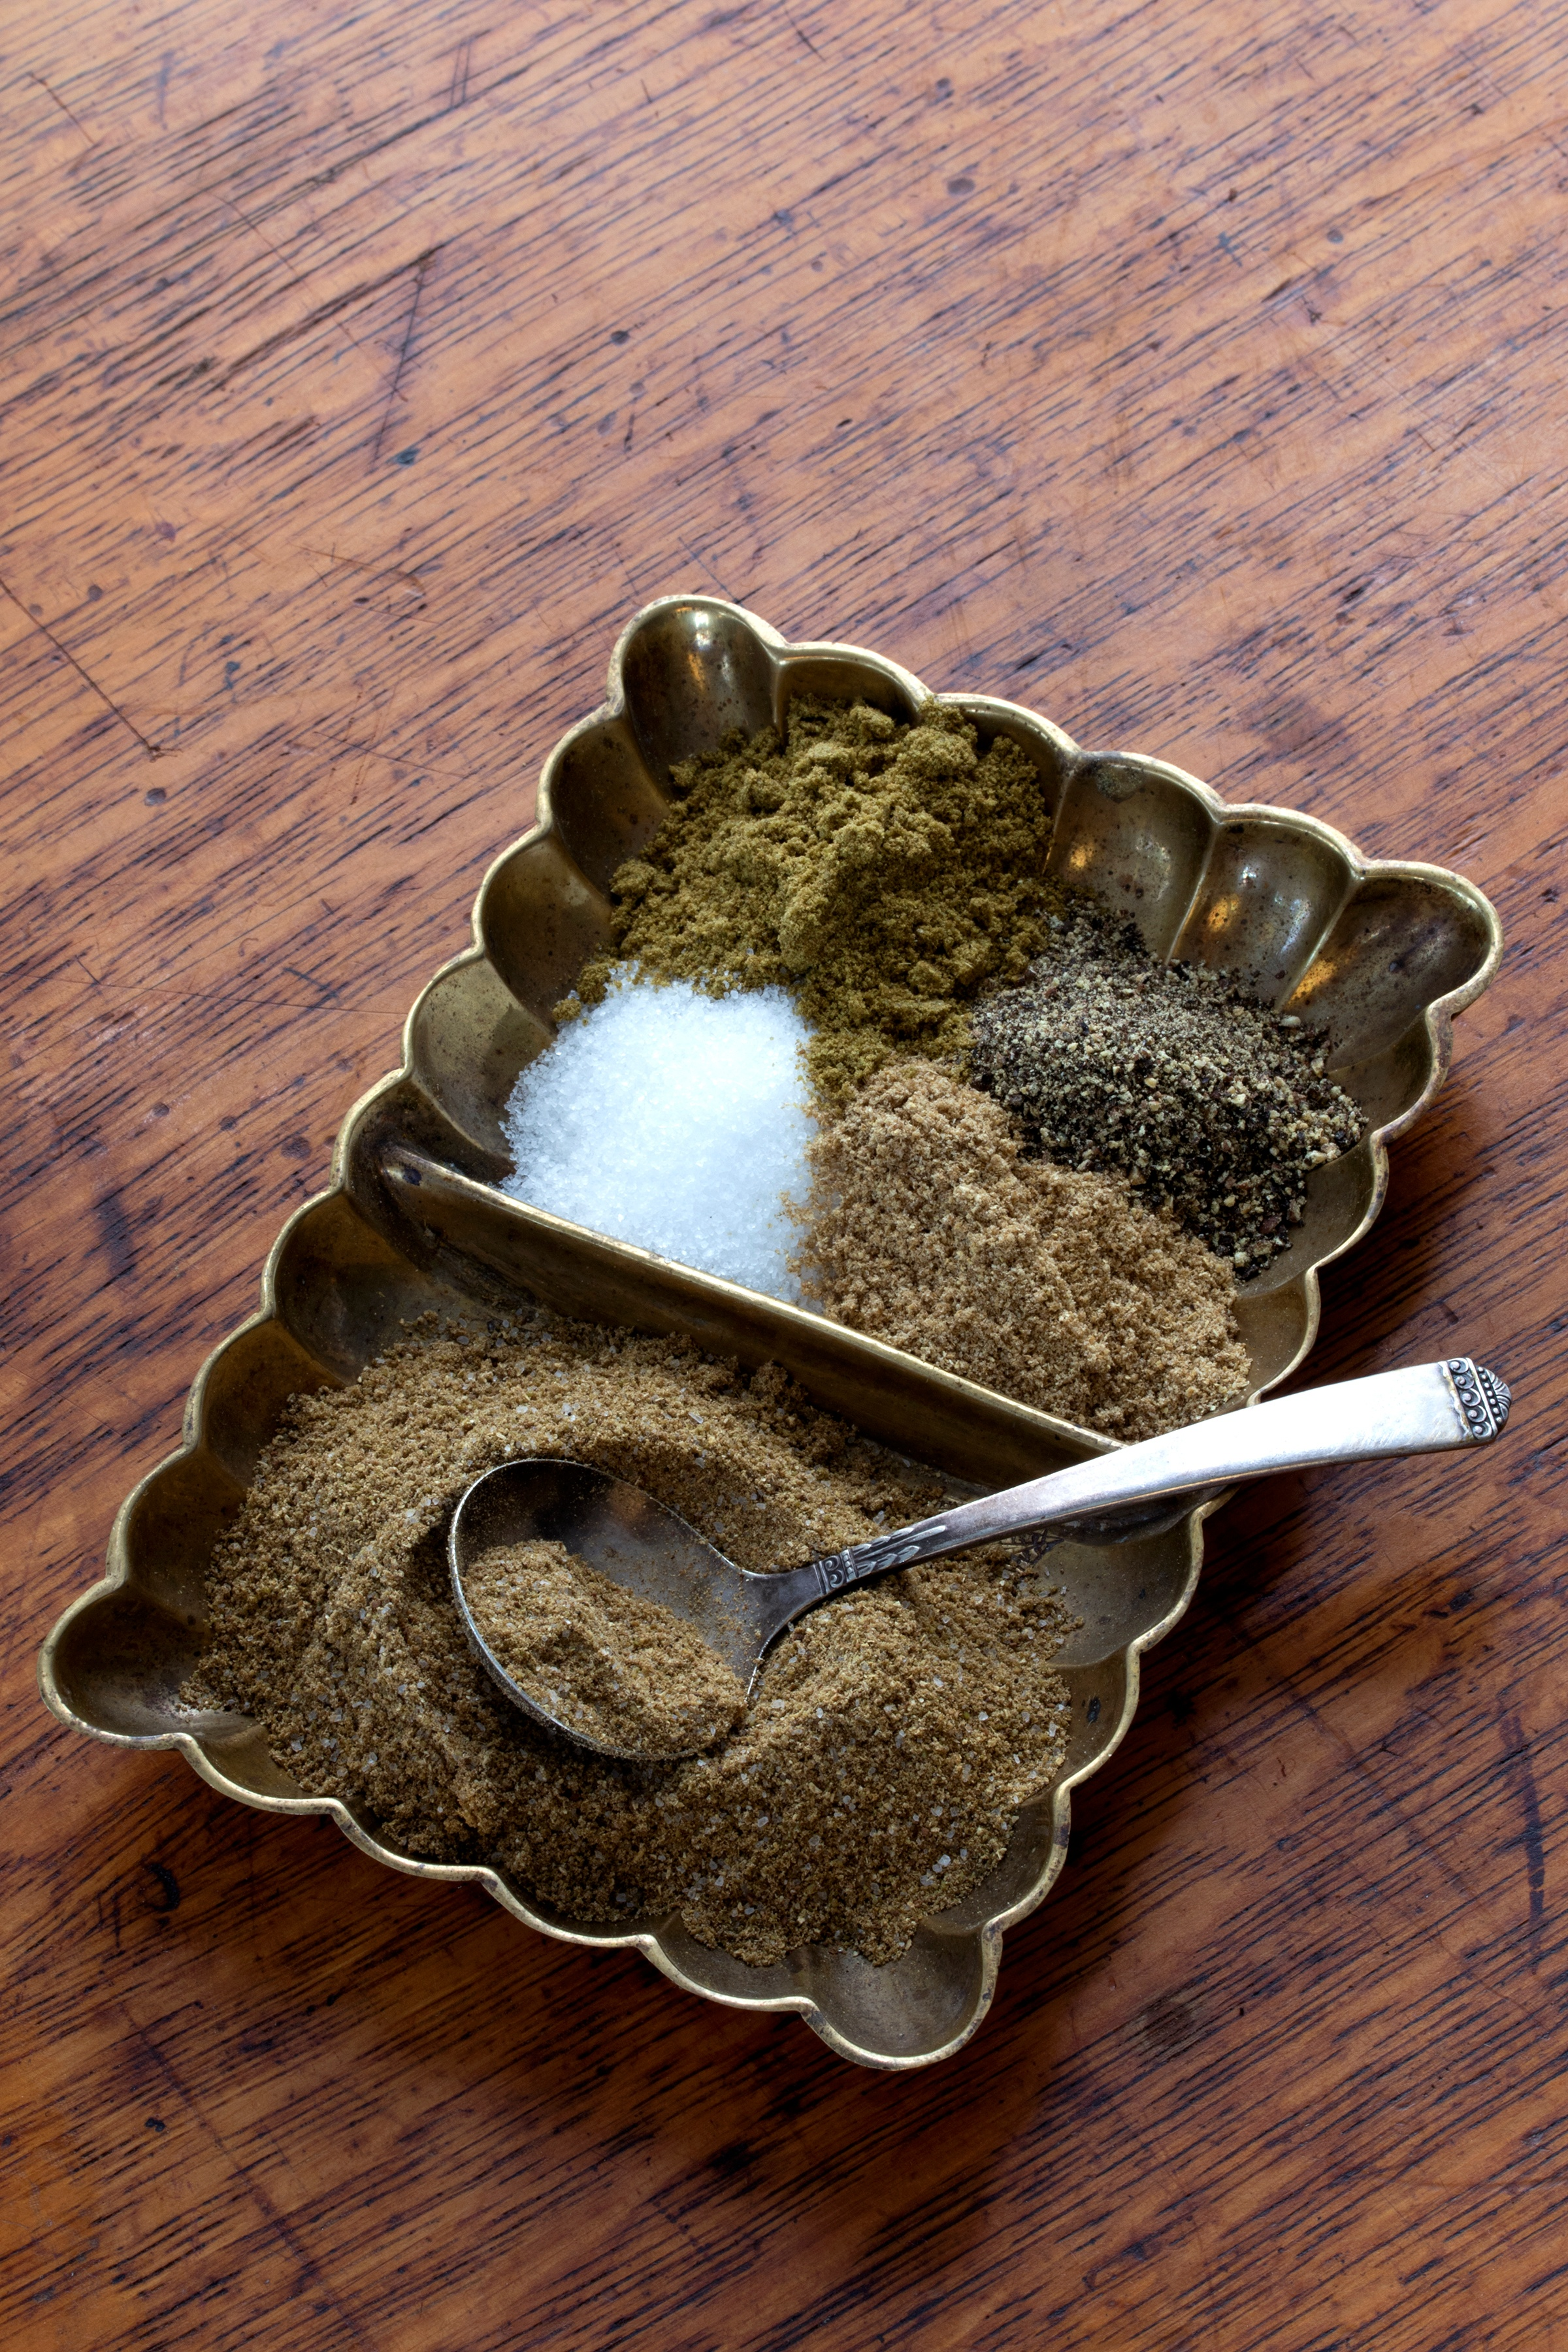 Punjabi Spice blend with cumin powder, coriander powder, black pepper, salt in a copper dish with a spoon on the table